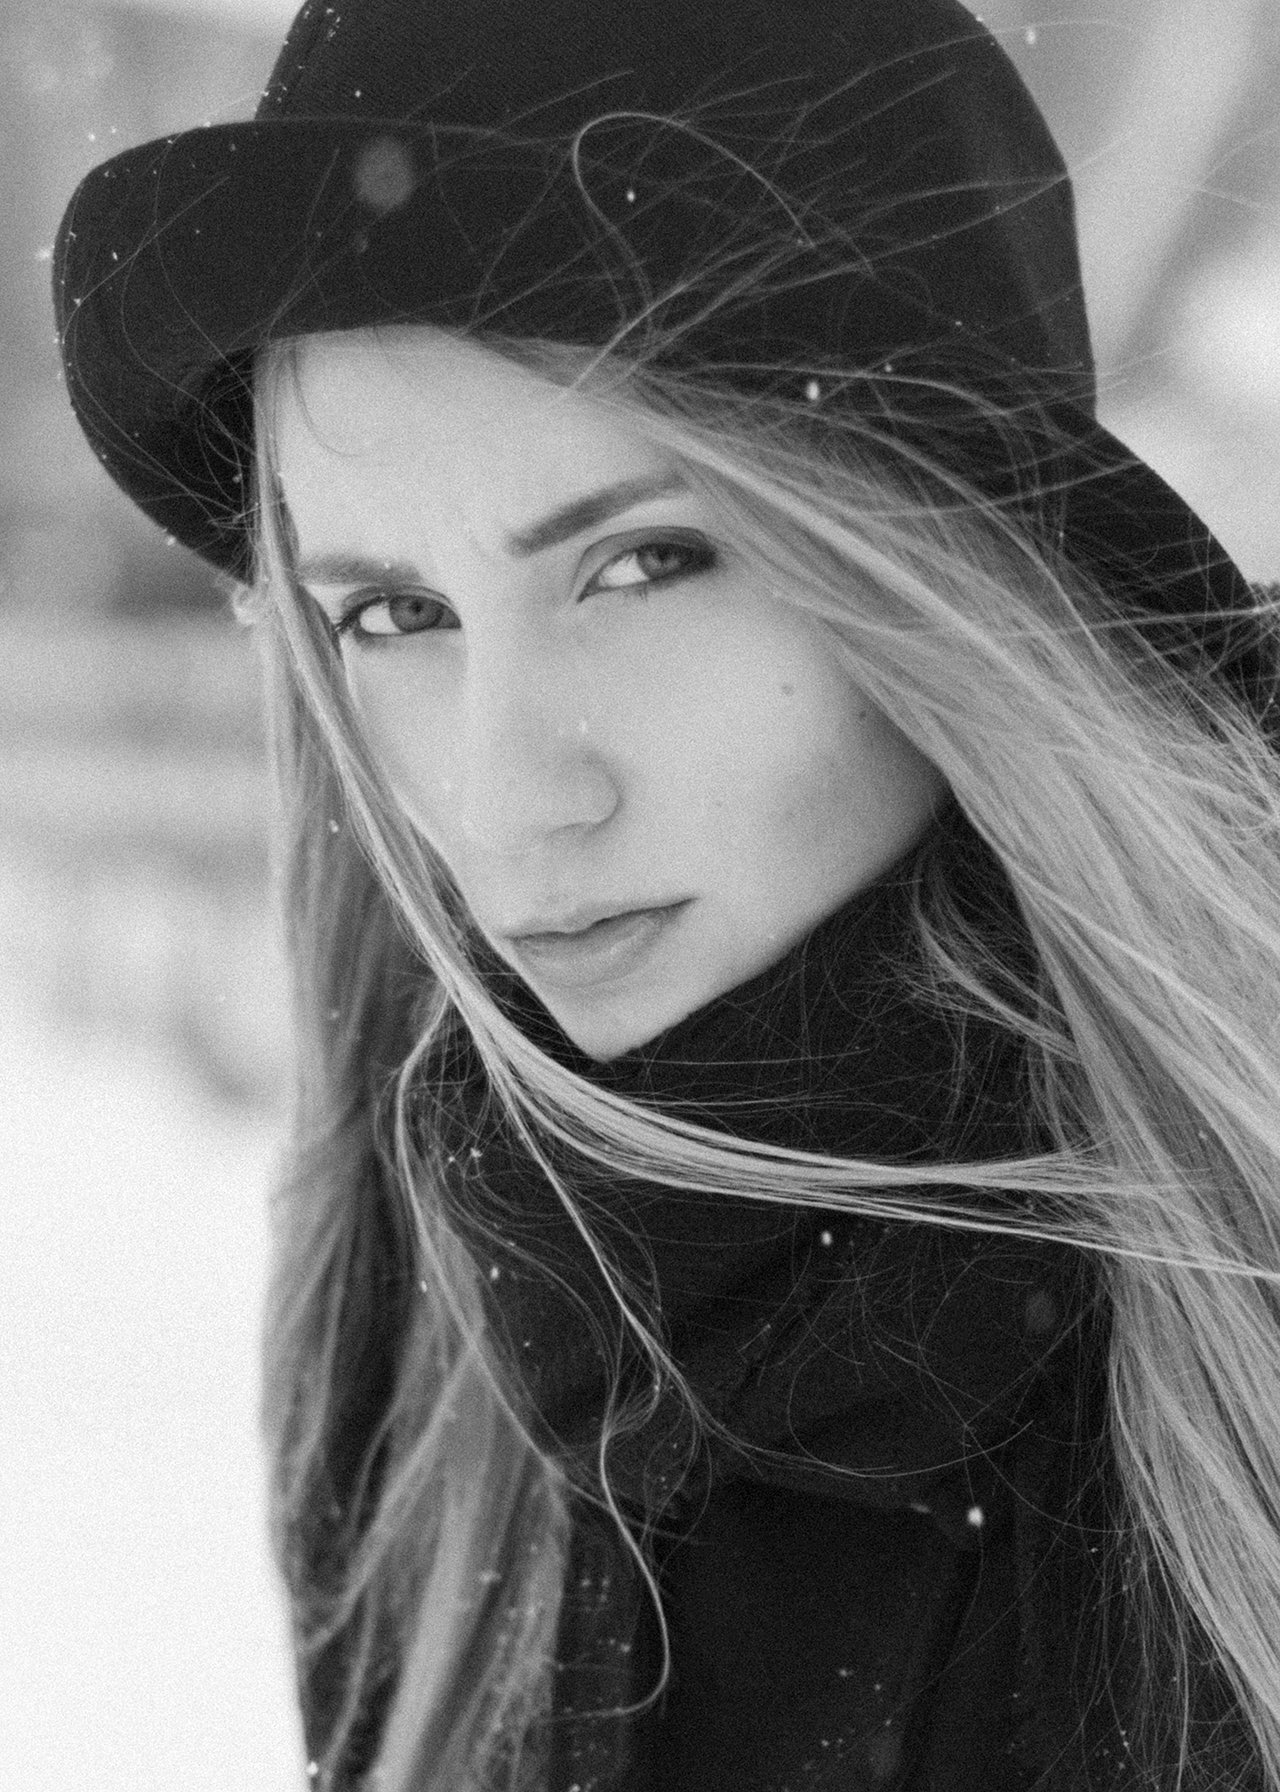 #girl #portrait #bw, Саврасов Сергей